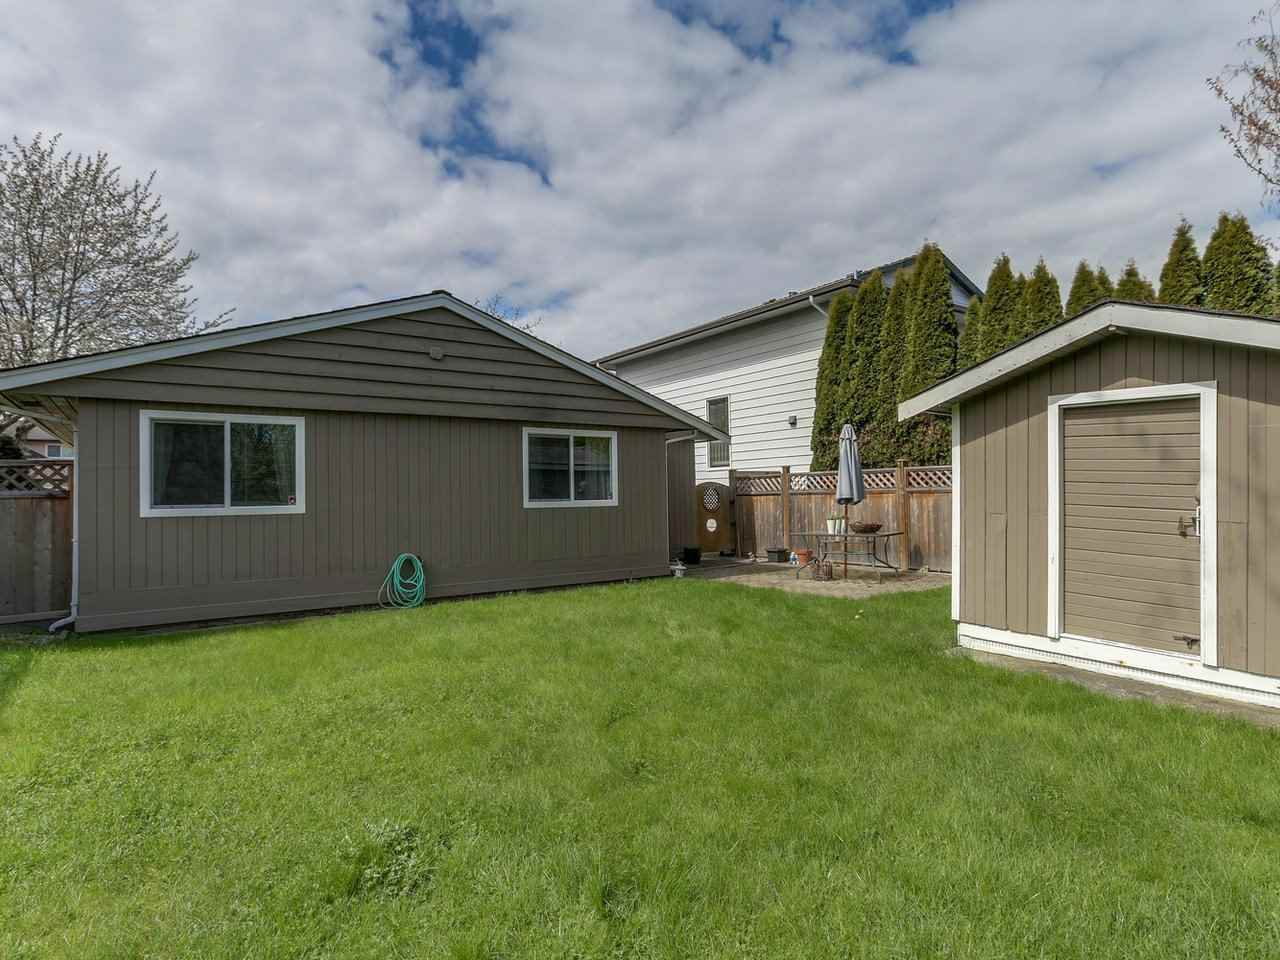 """Photo 15: Photos: 10550 HOLLYMOUNT Drive in Richmond: Steveston North House for sale in """"HOLLIES"""" : MLS®# R2366603"""